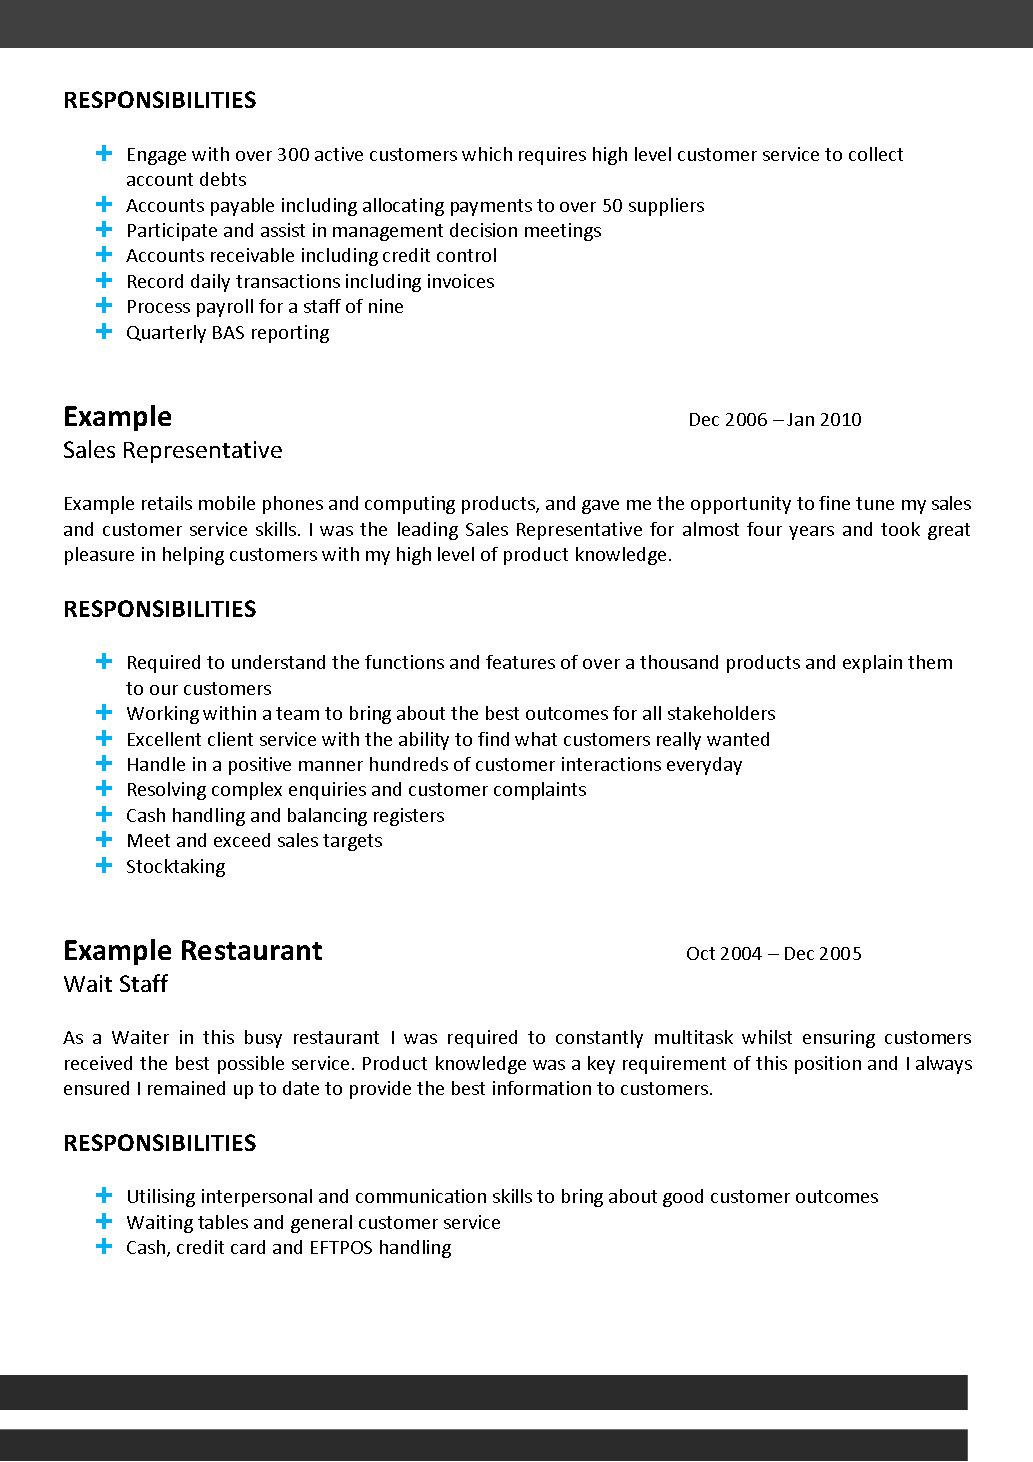 Free Resume Review from The Resume Centre